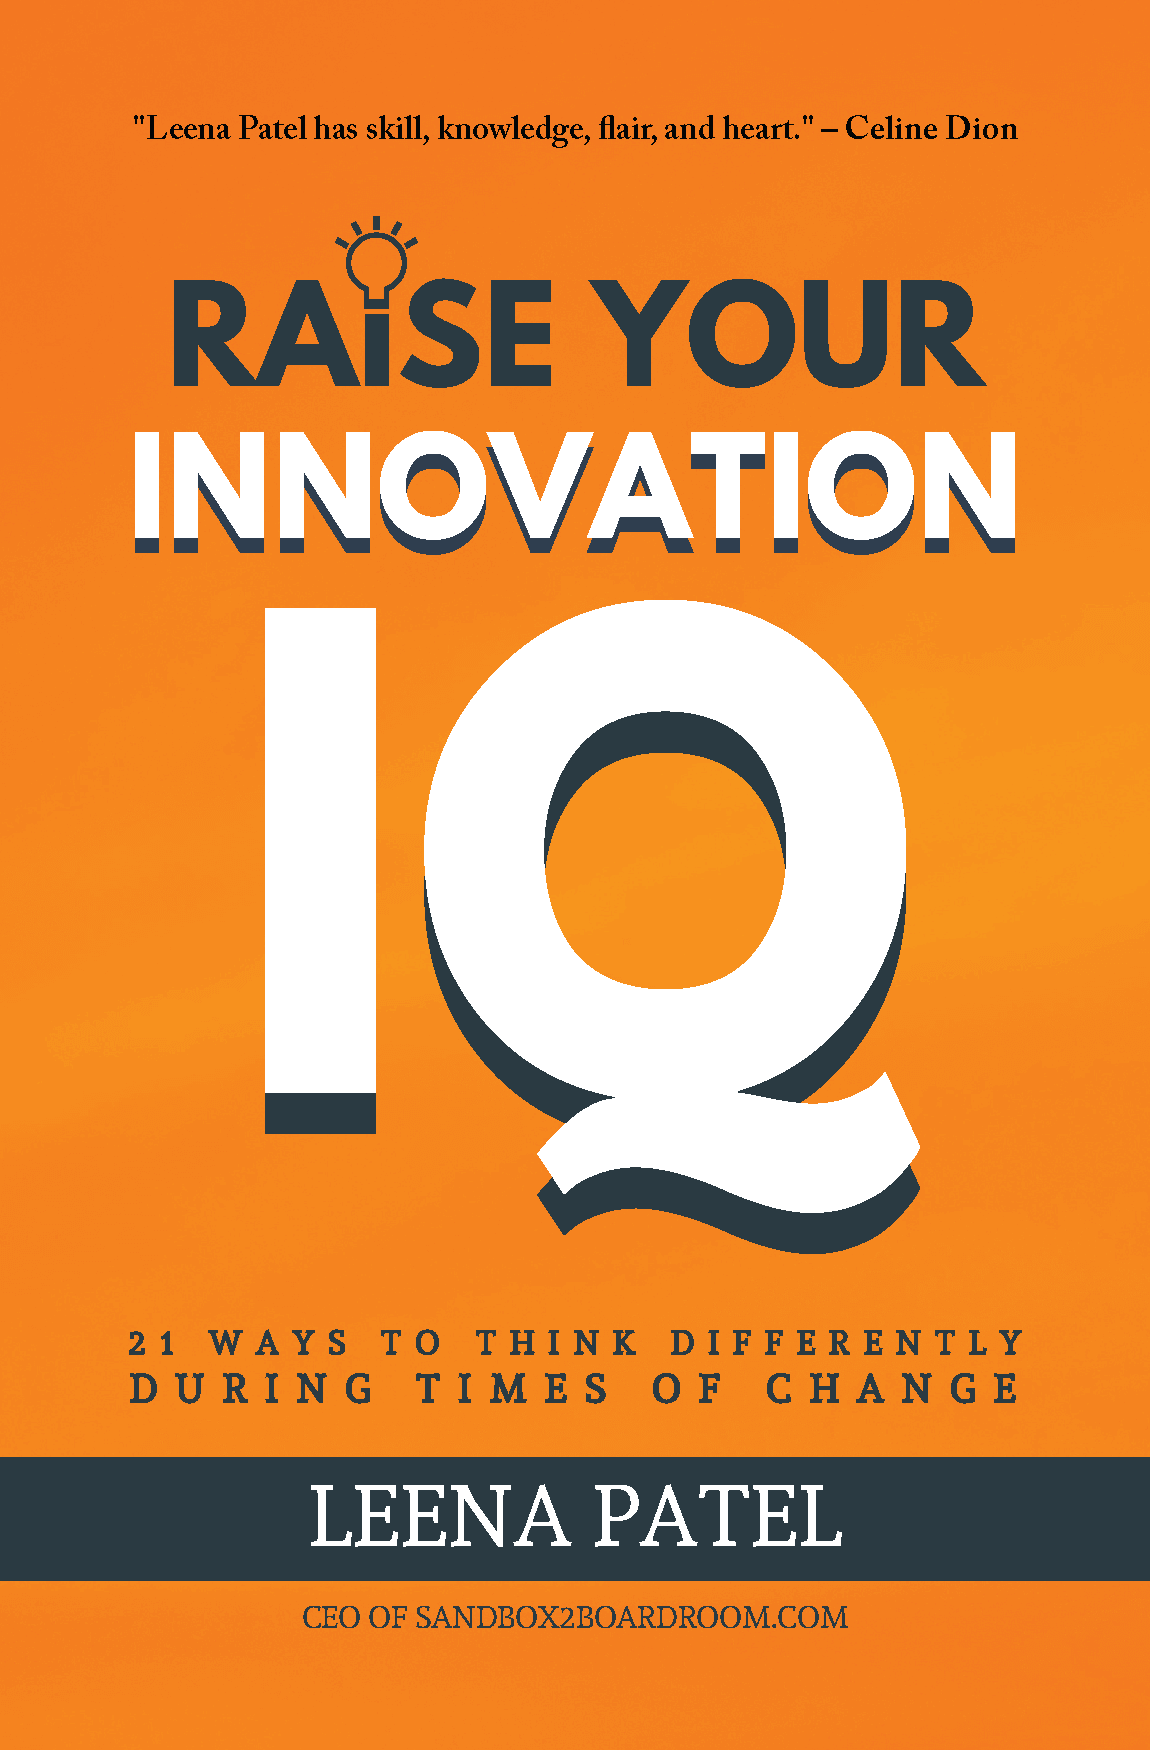 Raise Your Innovation IQ book